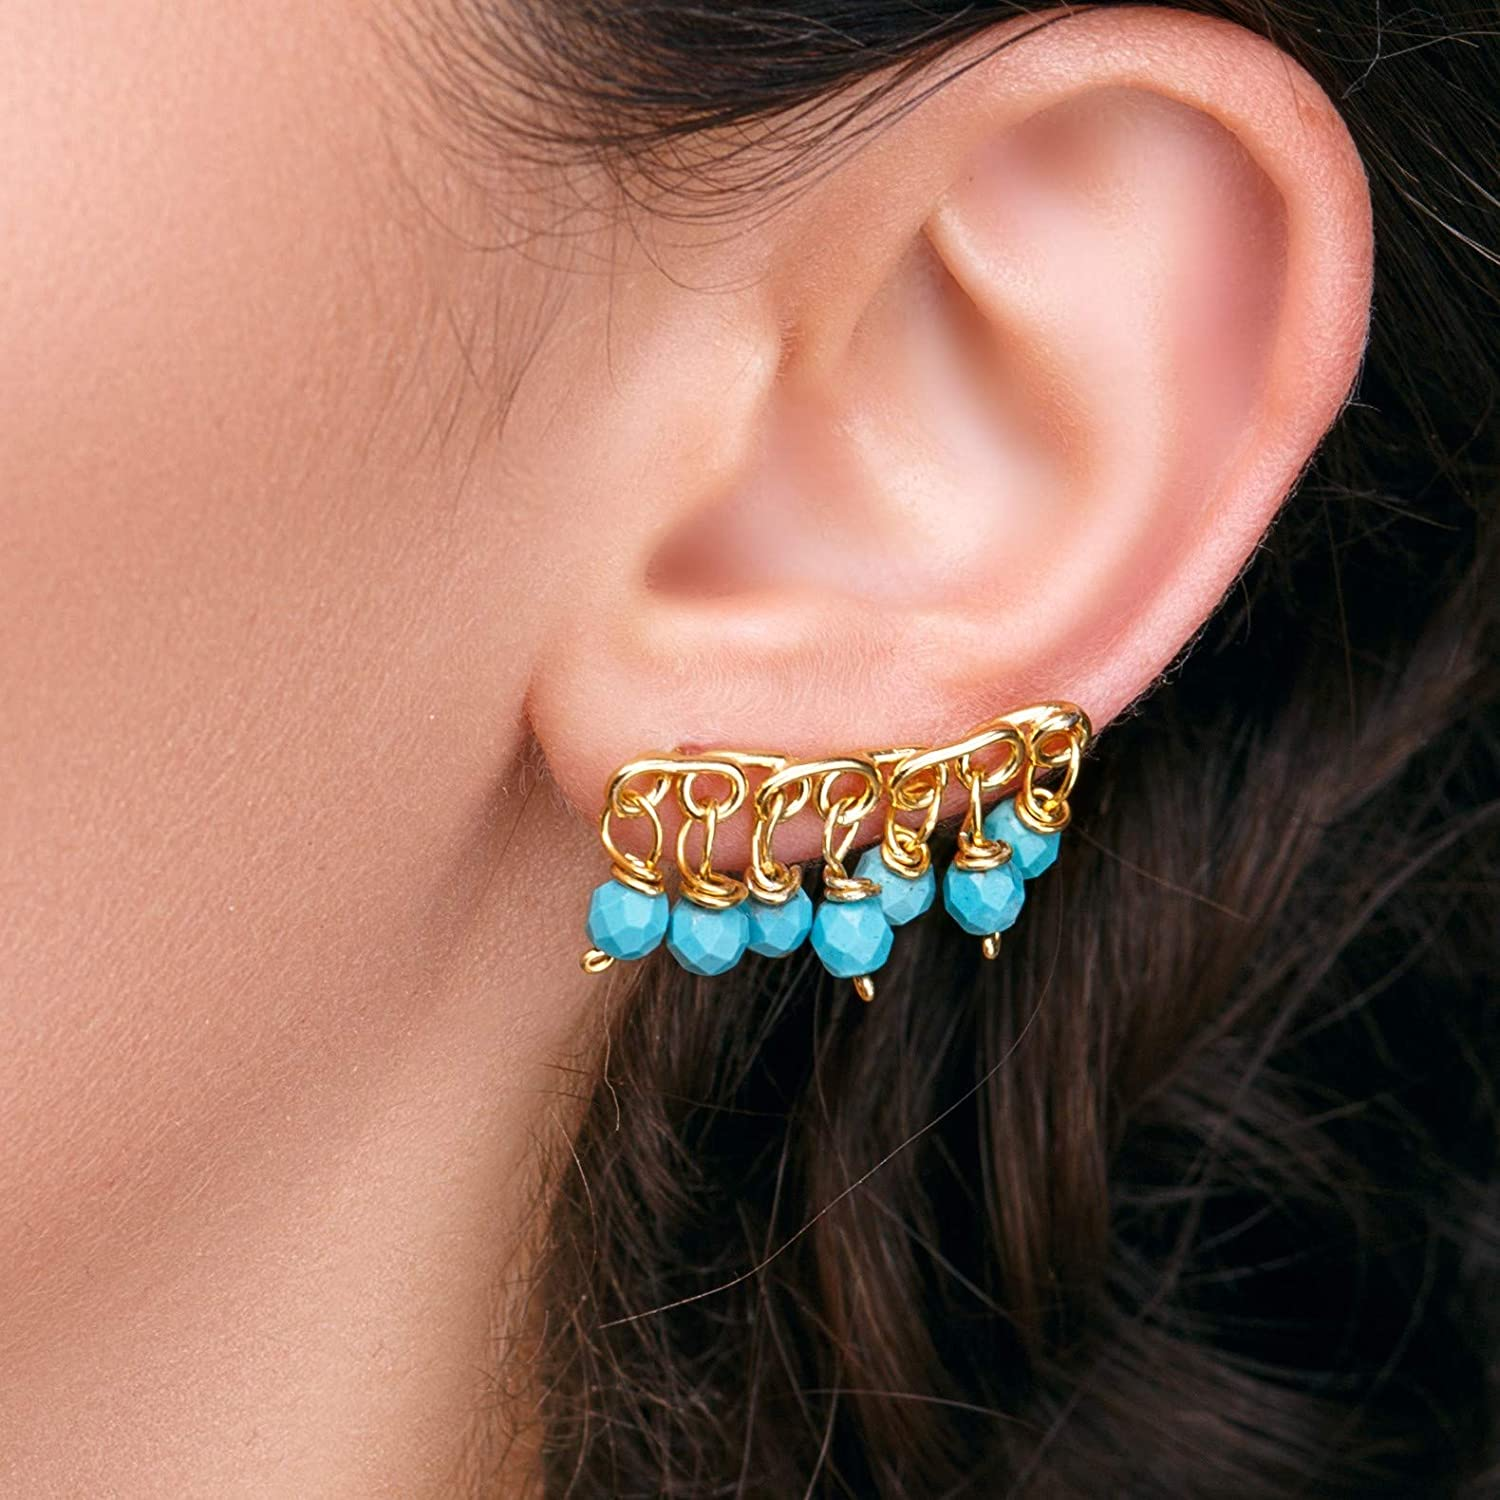 Turquoise ear cuff earrings, turquoise jewelry, boho earrings, gypsy earrings, turquoise earings, boho ear climbers, ear crawlers, gift